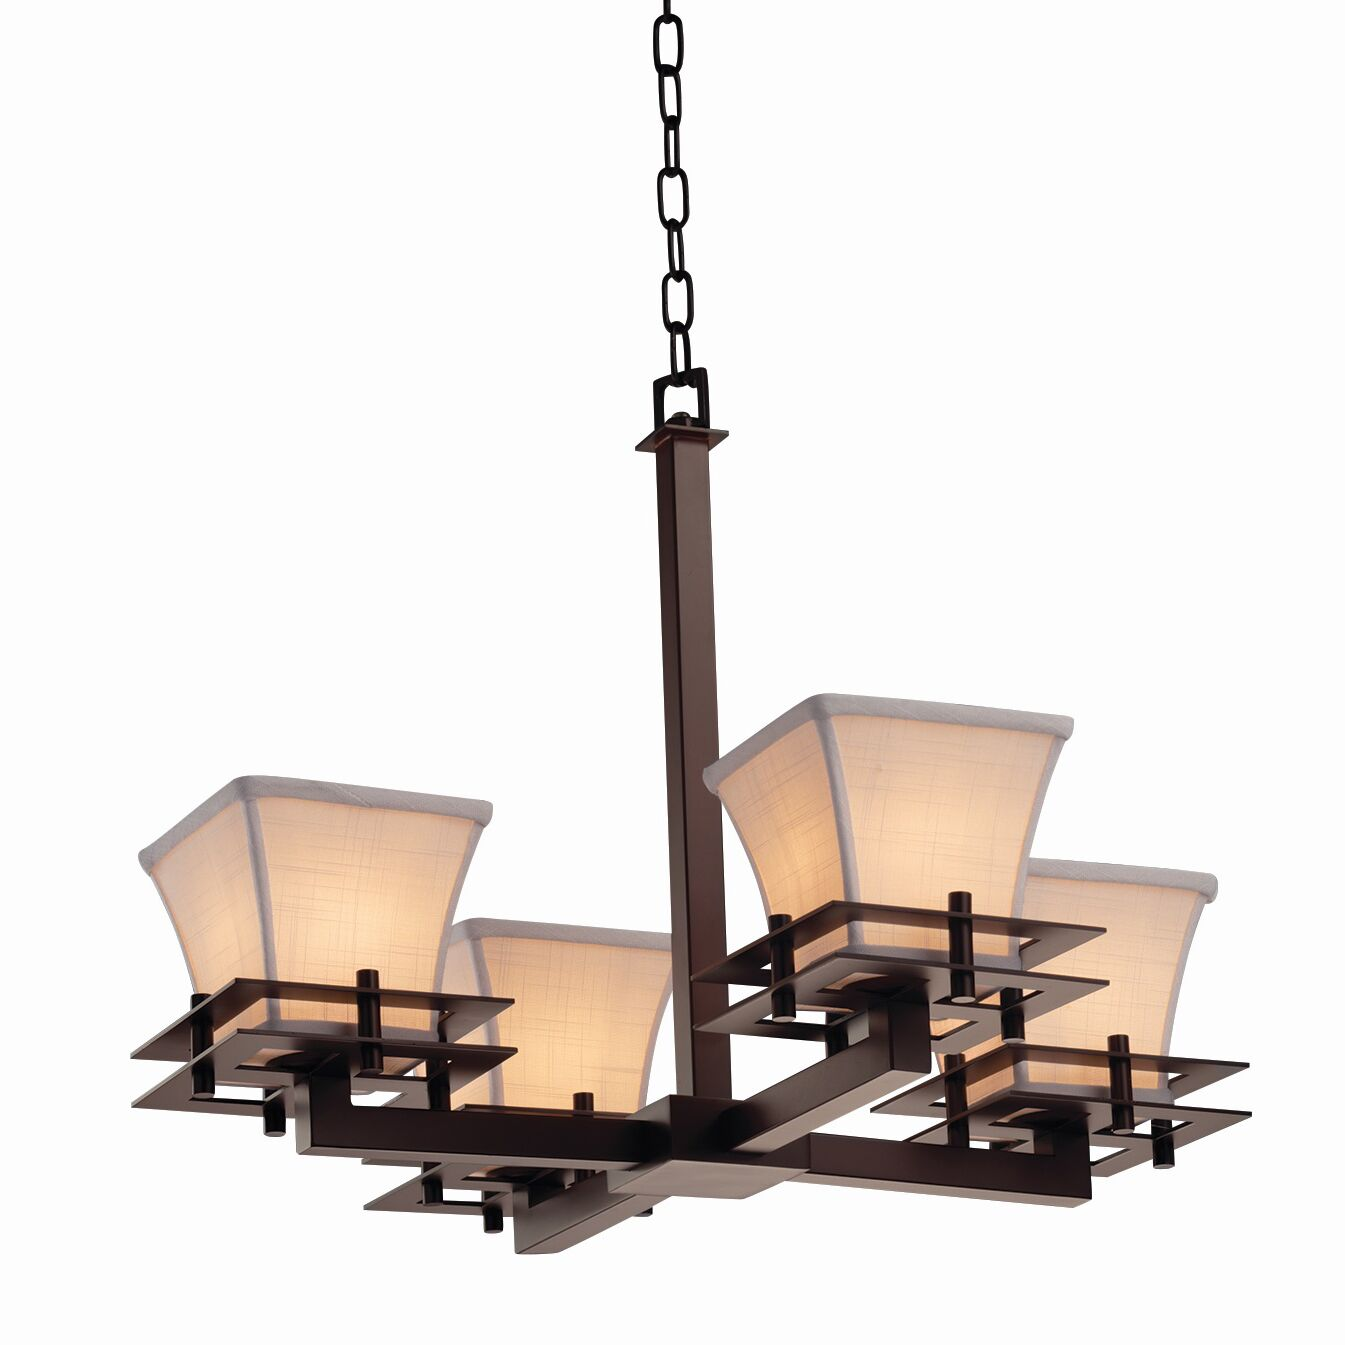 Red Hook 4 Light Square Flared Chandelier Finish: Polished Chrome, Shade Color: Cream